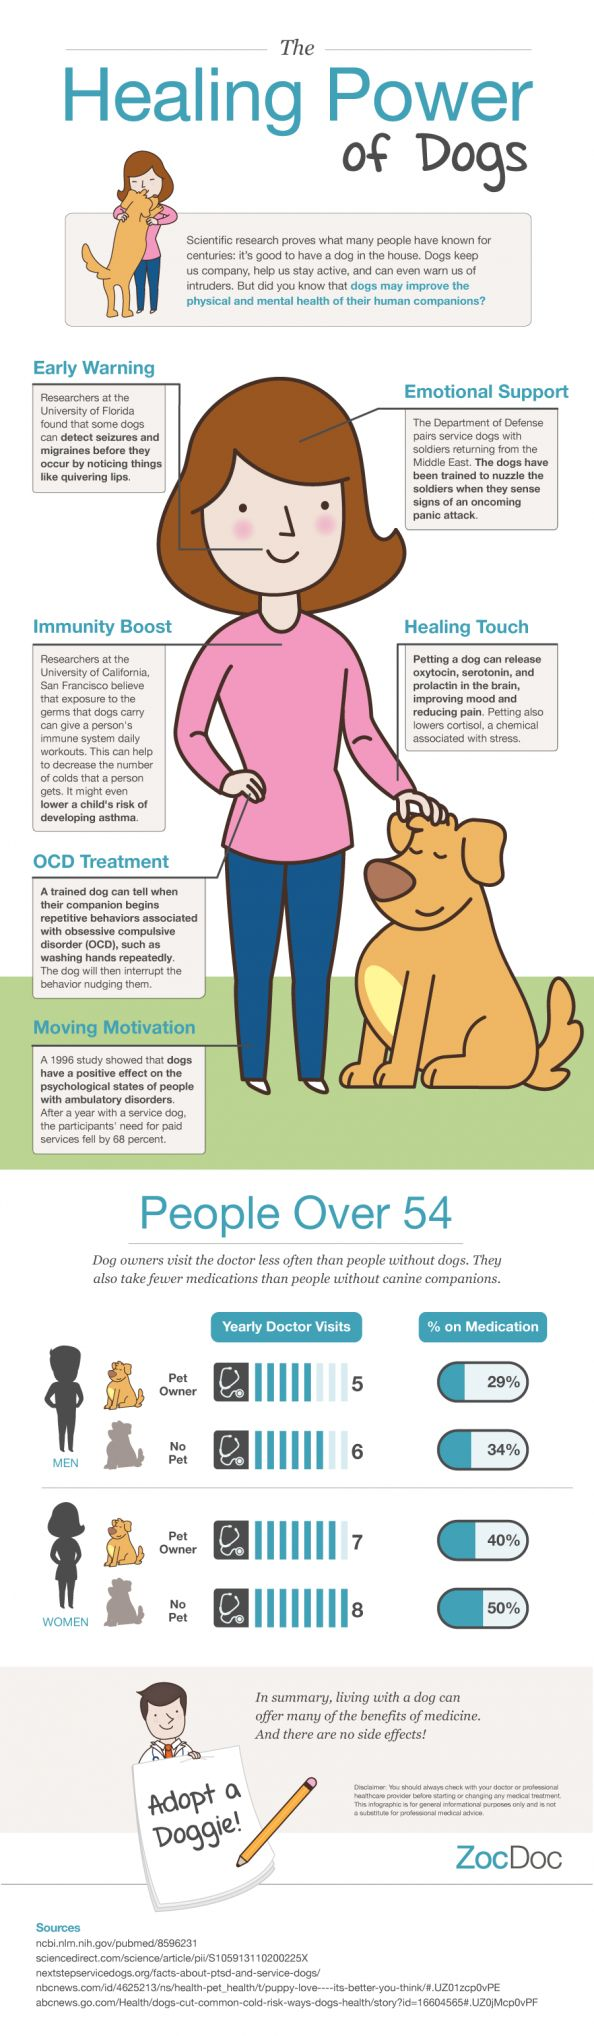 How owning a dog can keep you healthy. #adopt